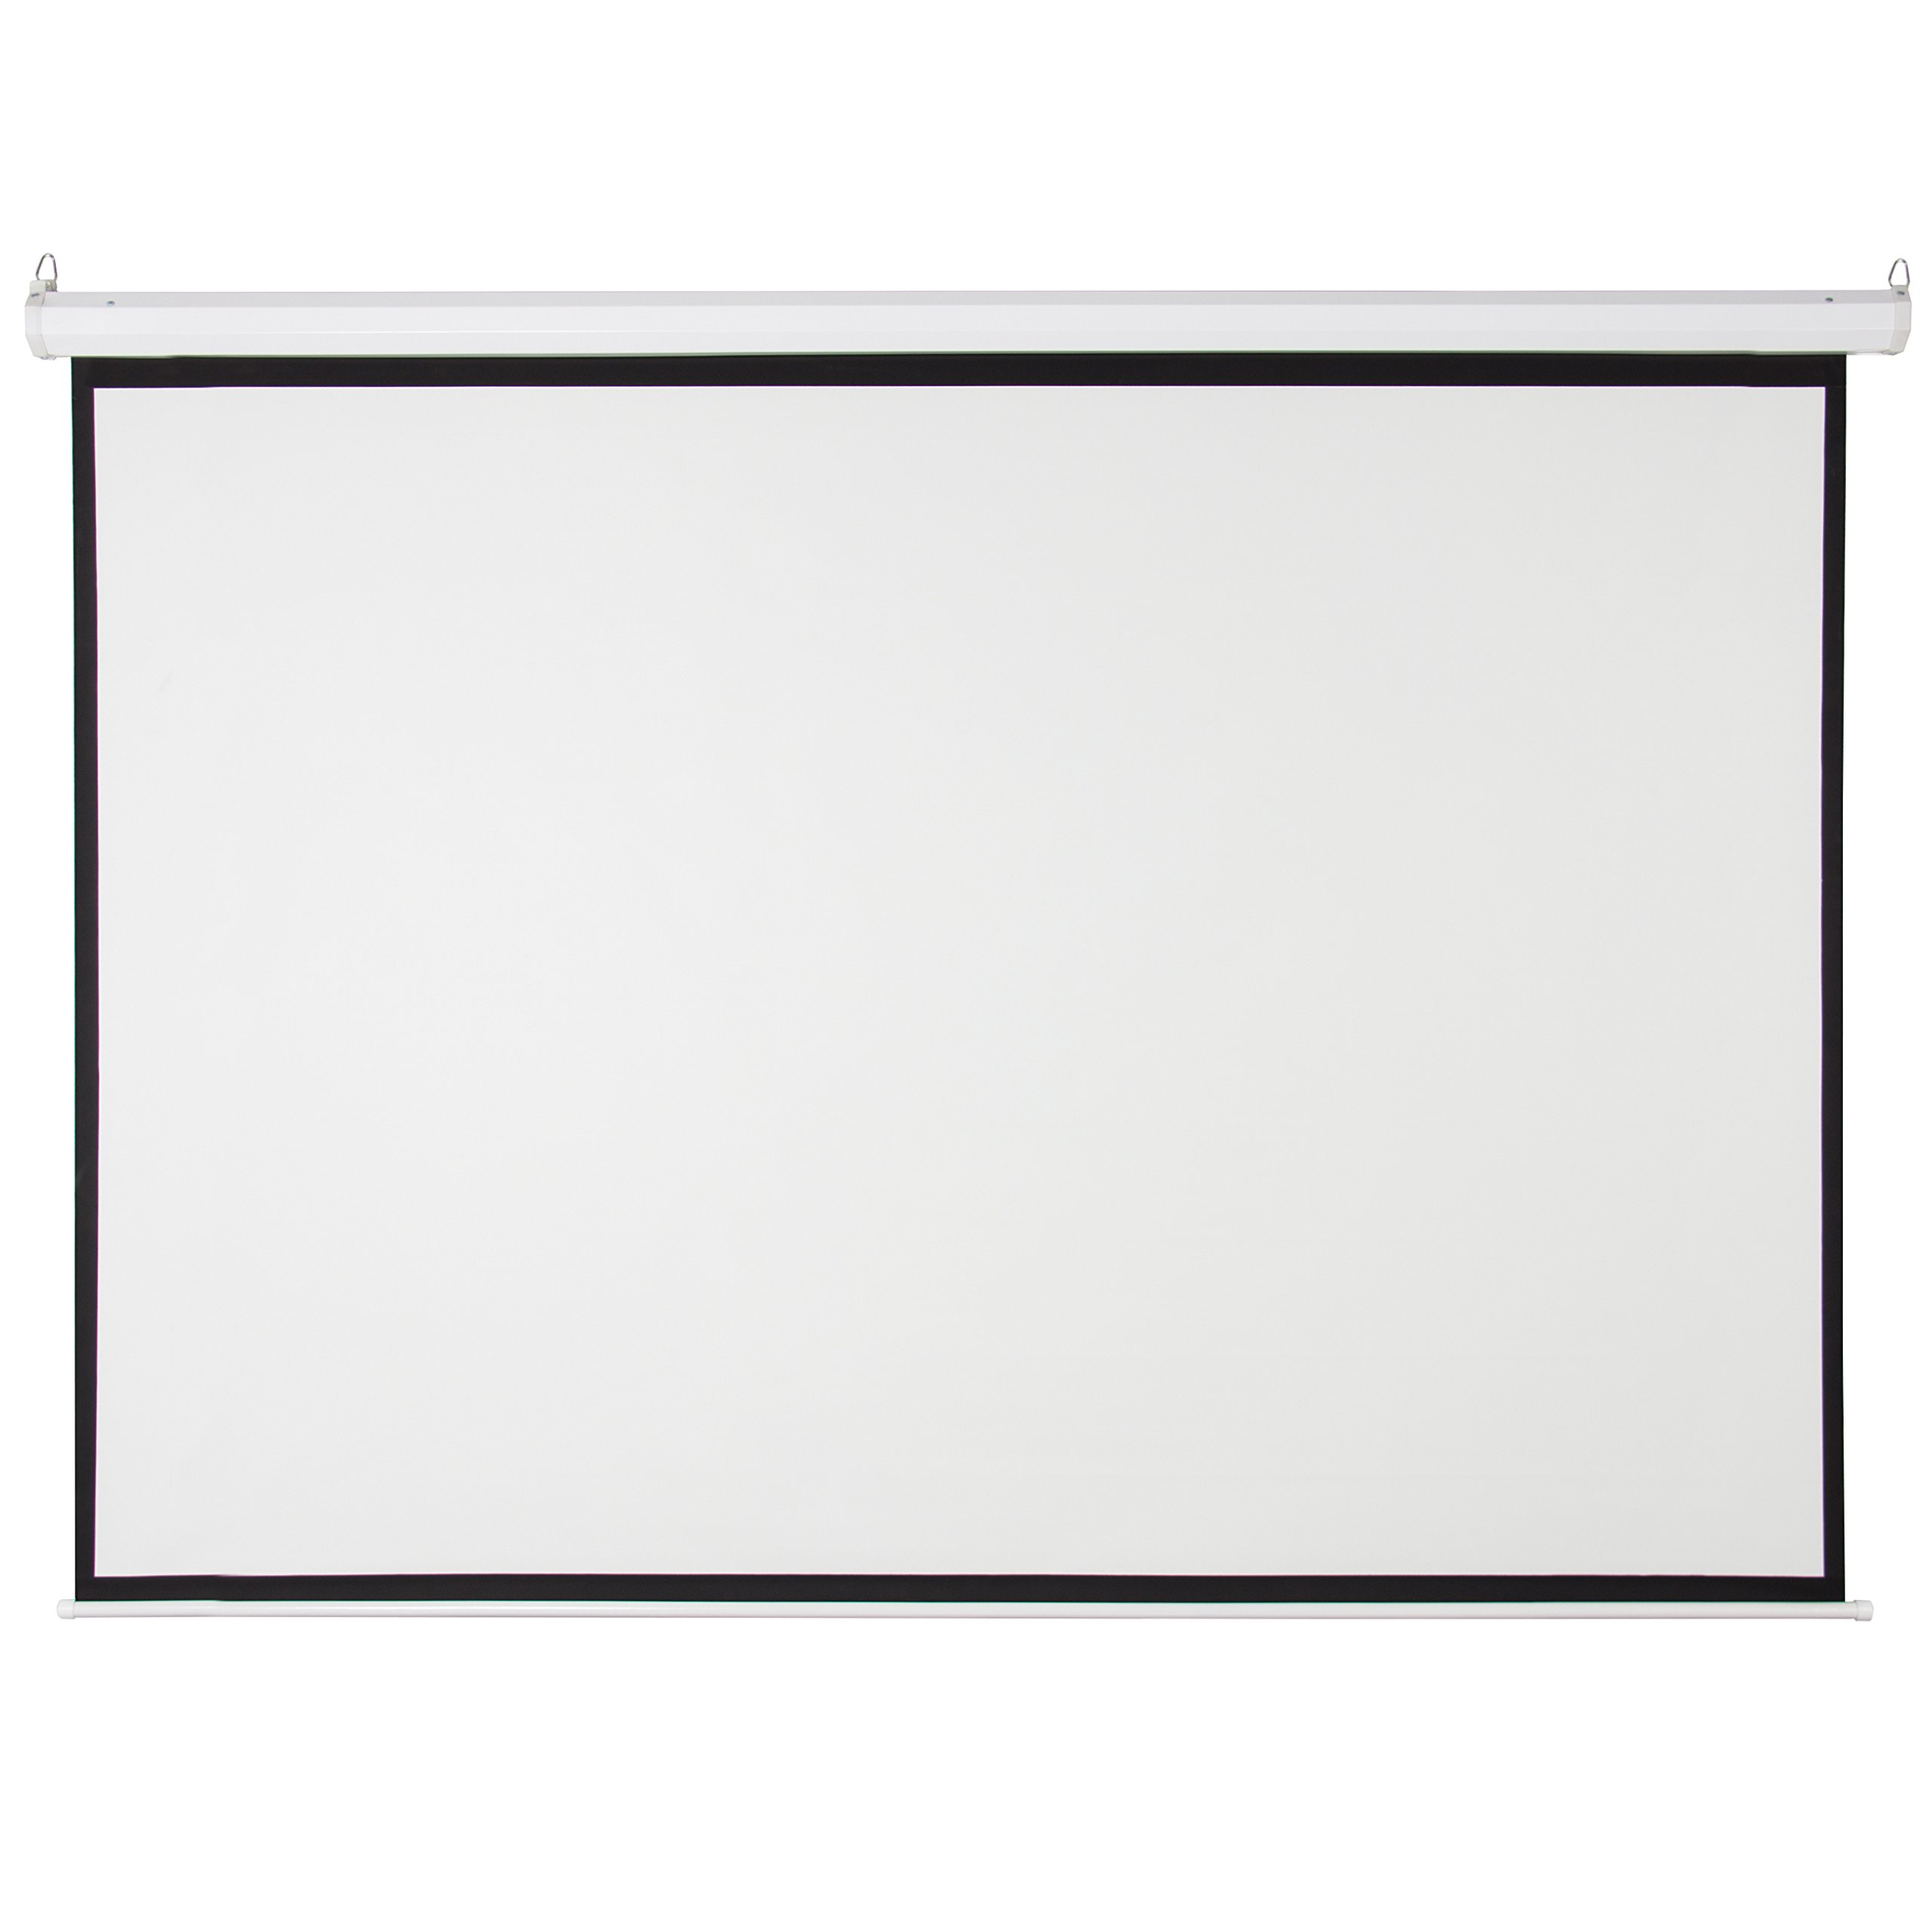 Galleon best choice products motorized electric auto hd for 130 inch motorized projector screen